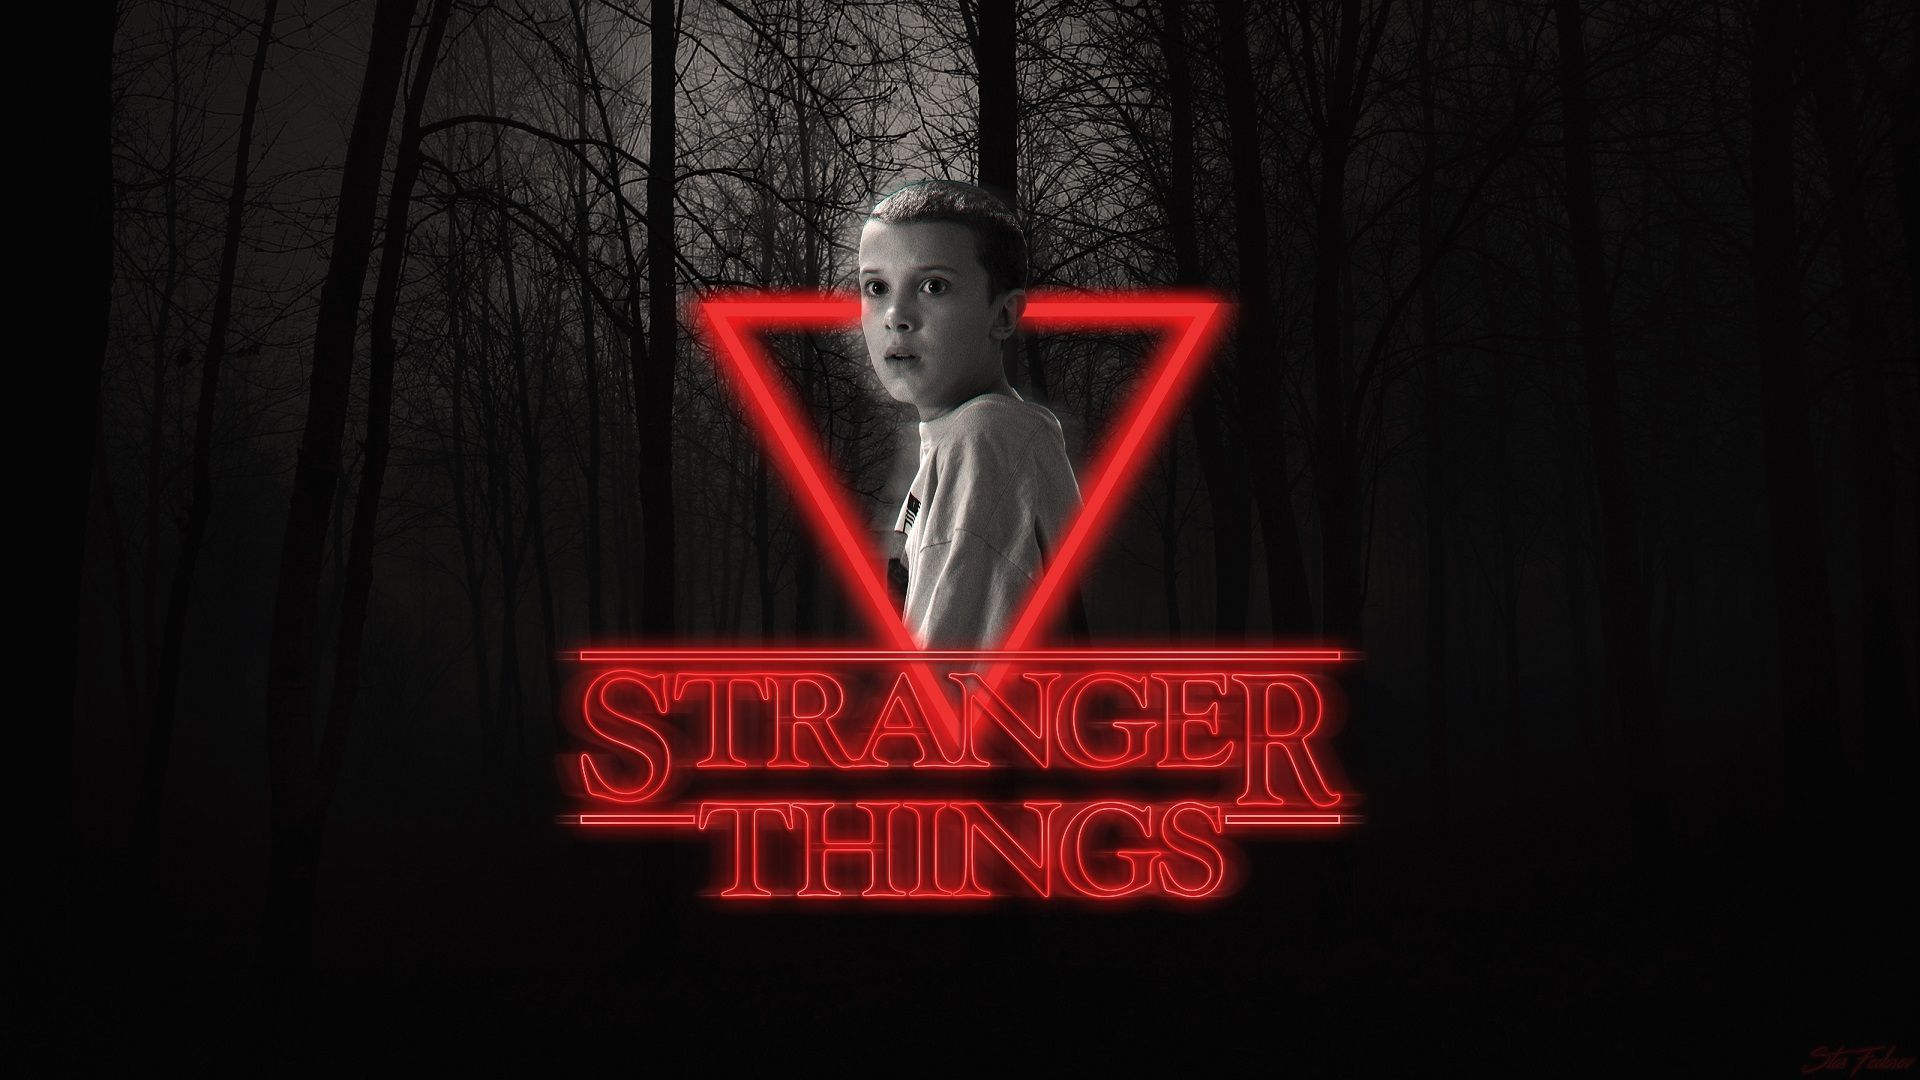 1920x1242 Eleven Stranger Things Download Latest Wallpaper For Pc Stranger Things Wallpaper Eleven Stranger Things Stranger Things Poster